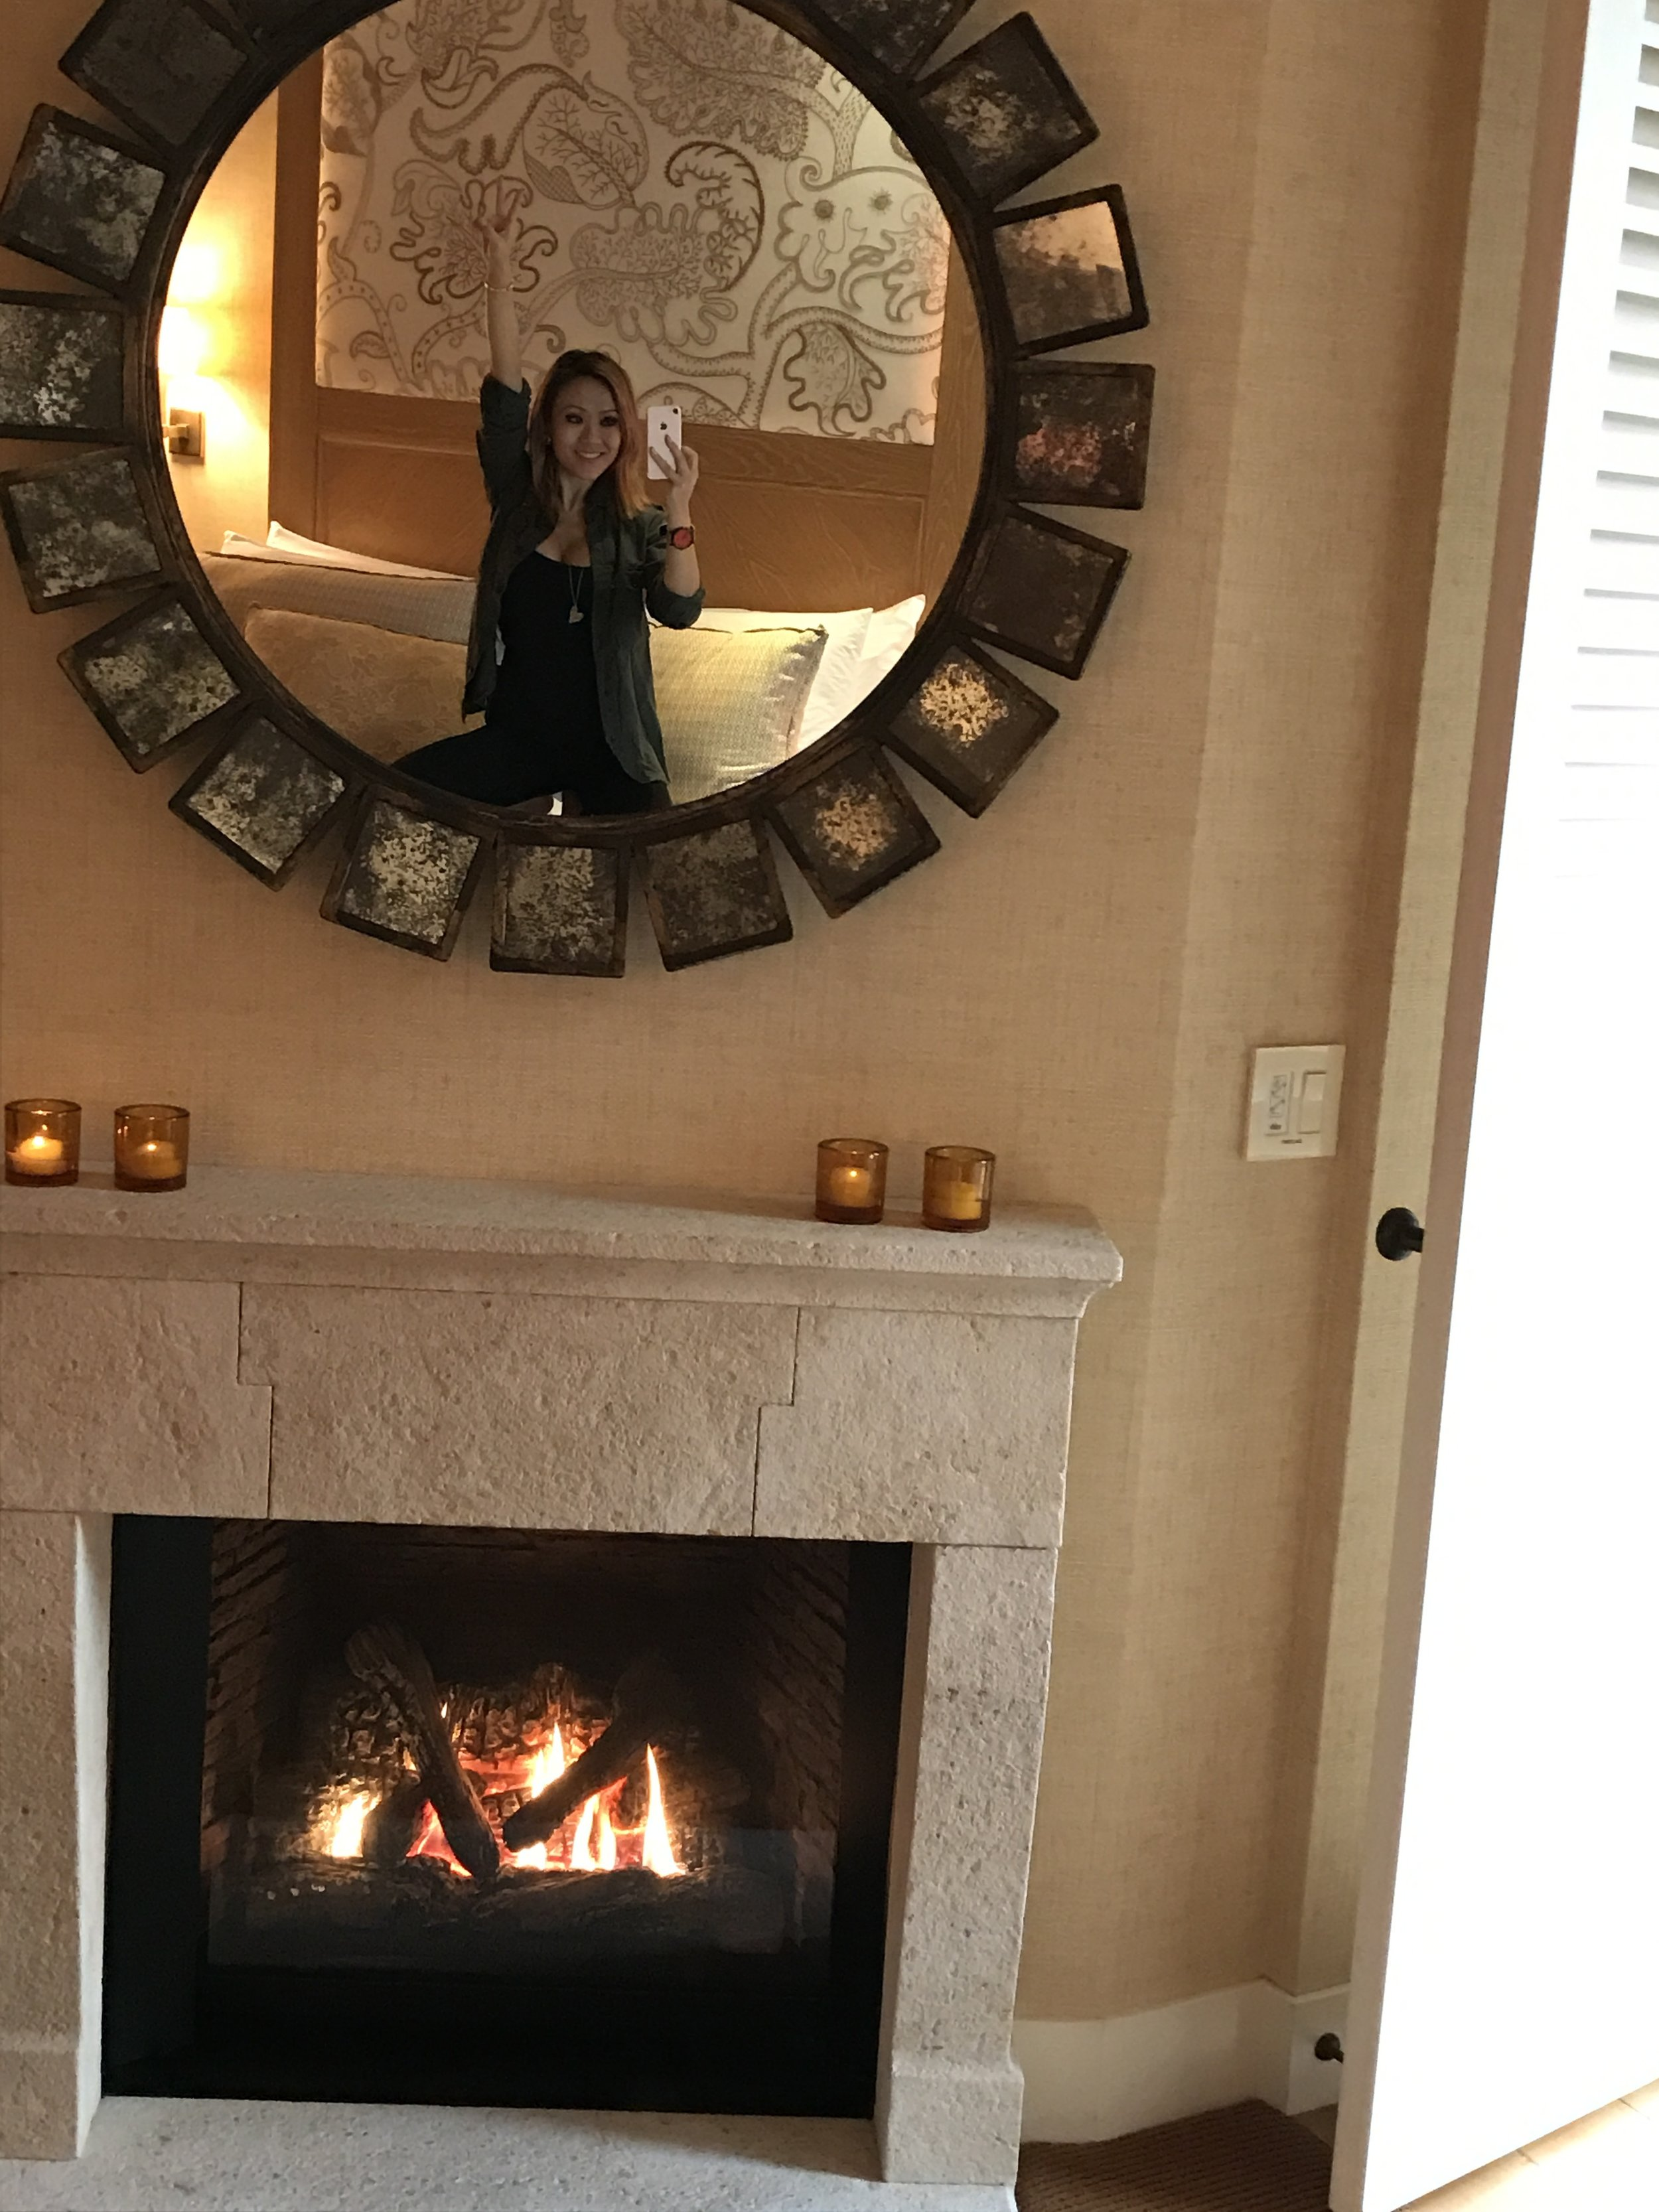 Excited about the fireplace in our room:)